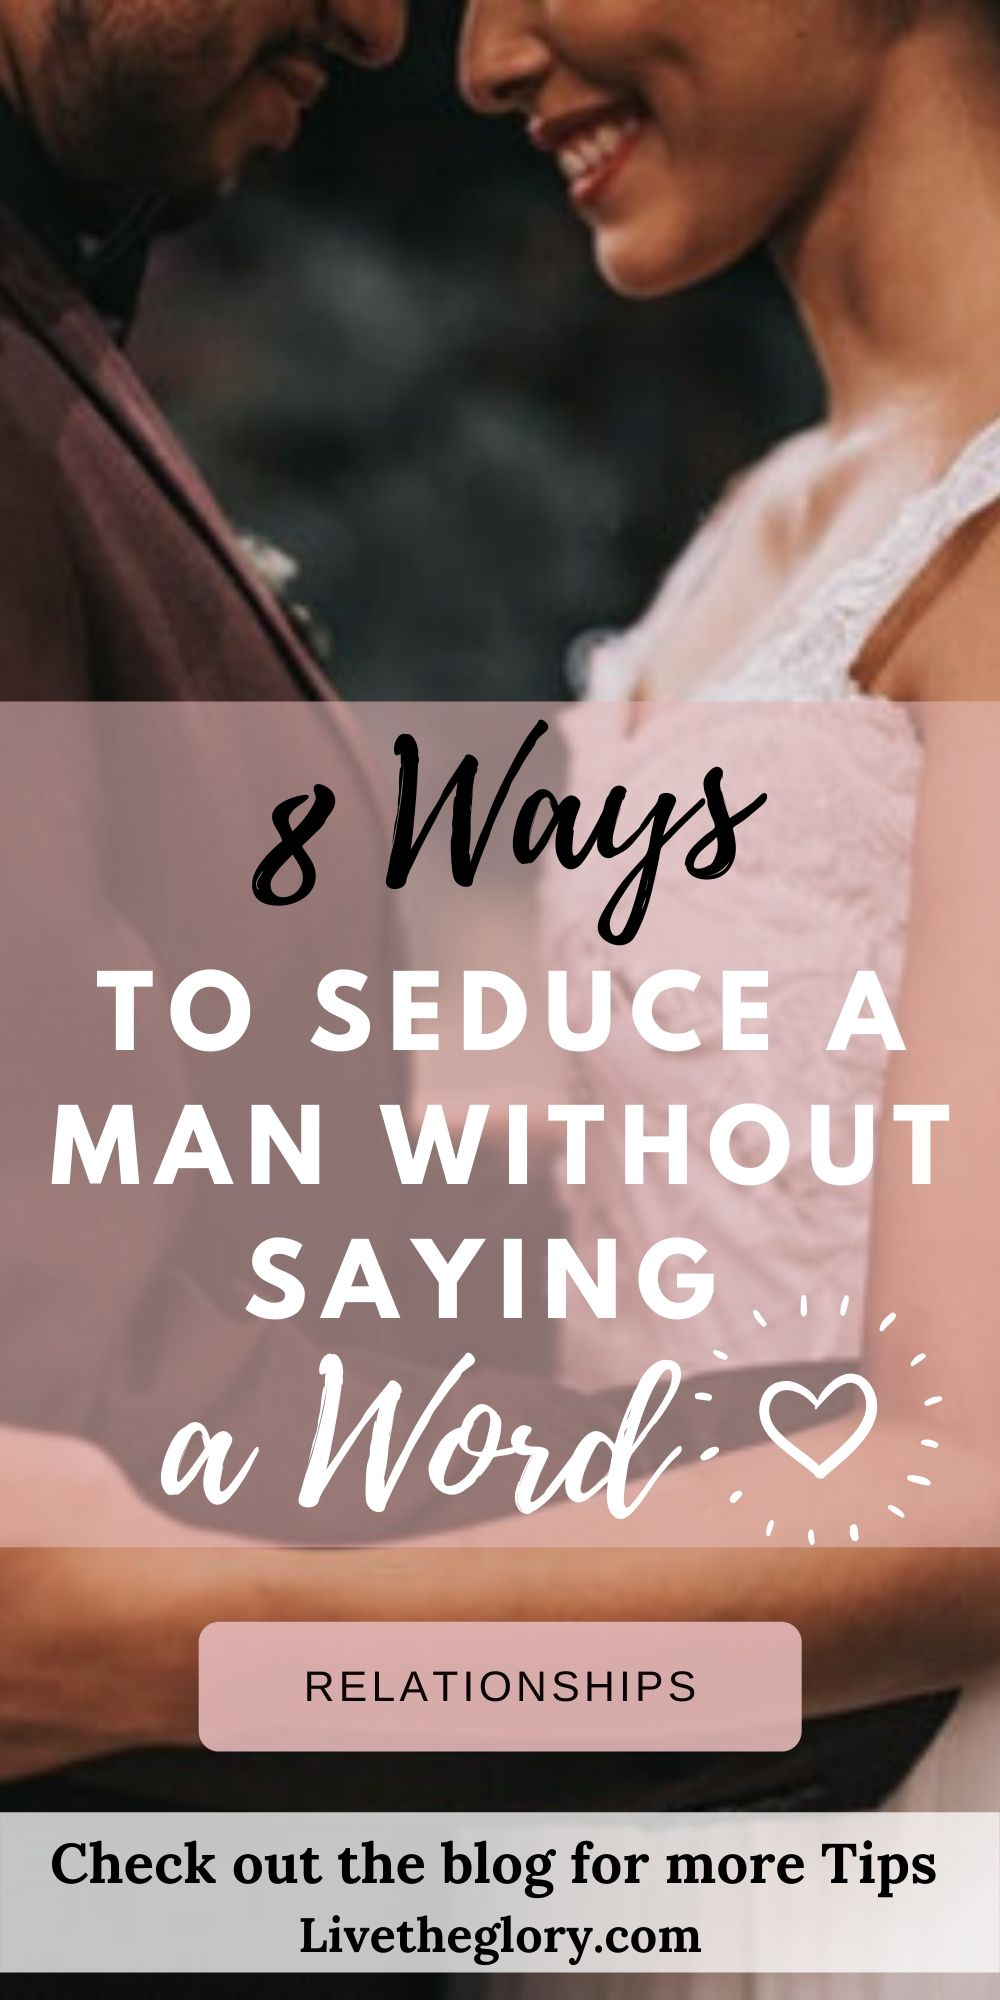 8 ways to seduce a man without saying a word - Live the glory